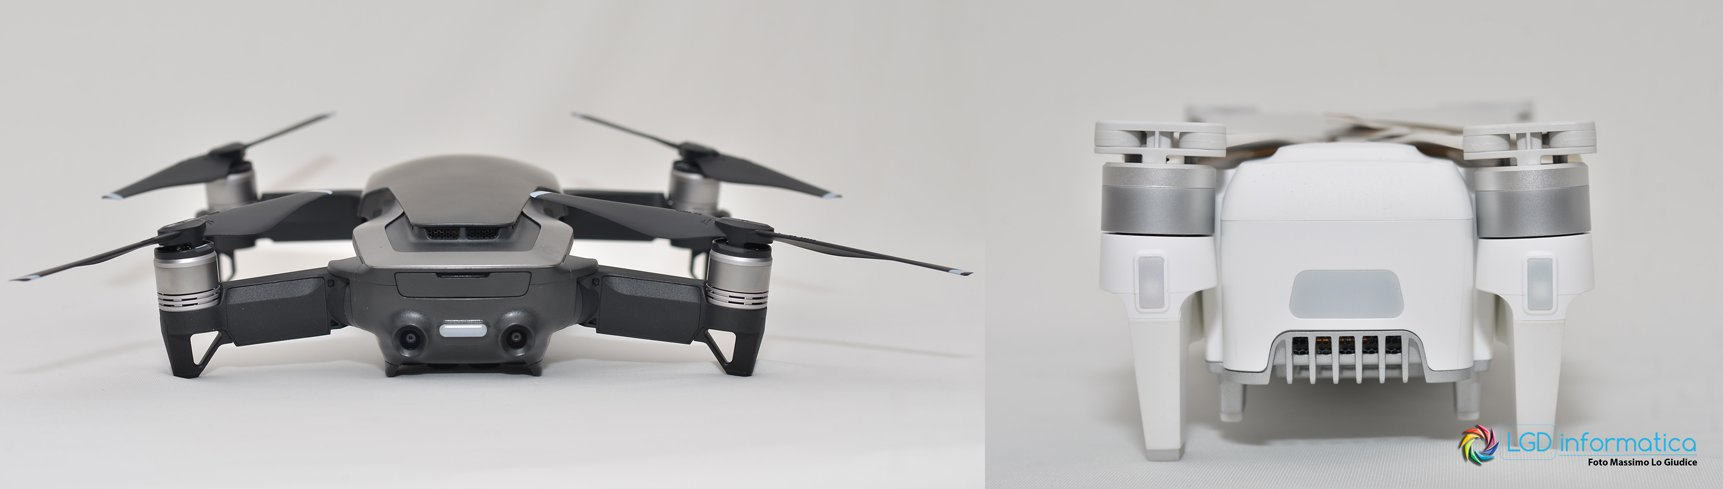 DJI Mavic Air vs Xiaomi FIMI X8 SE - Sensori anti collisione posteriori